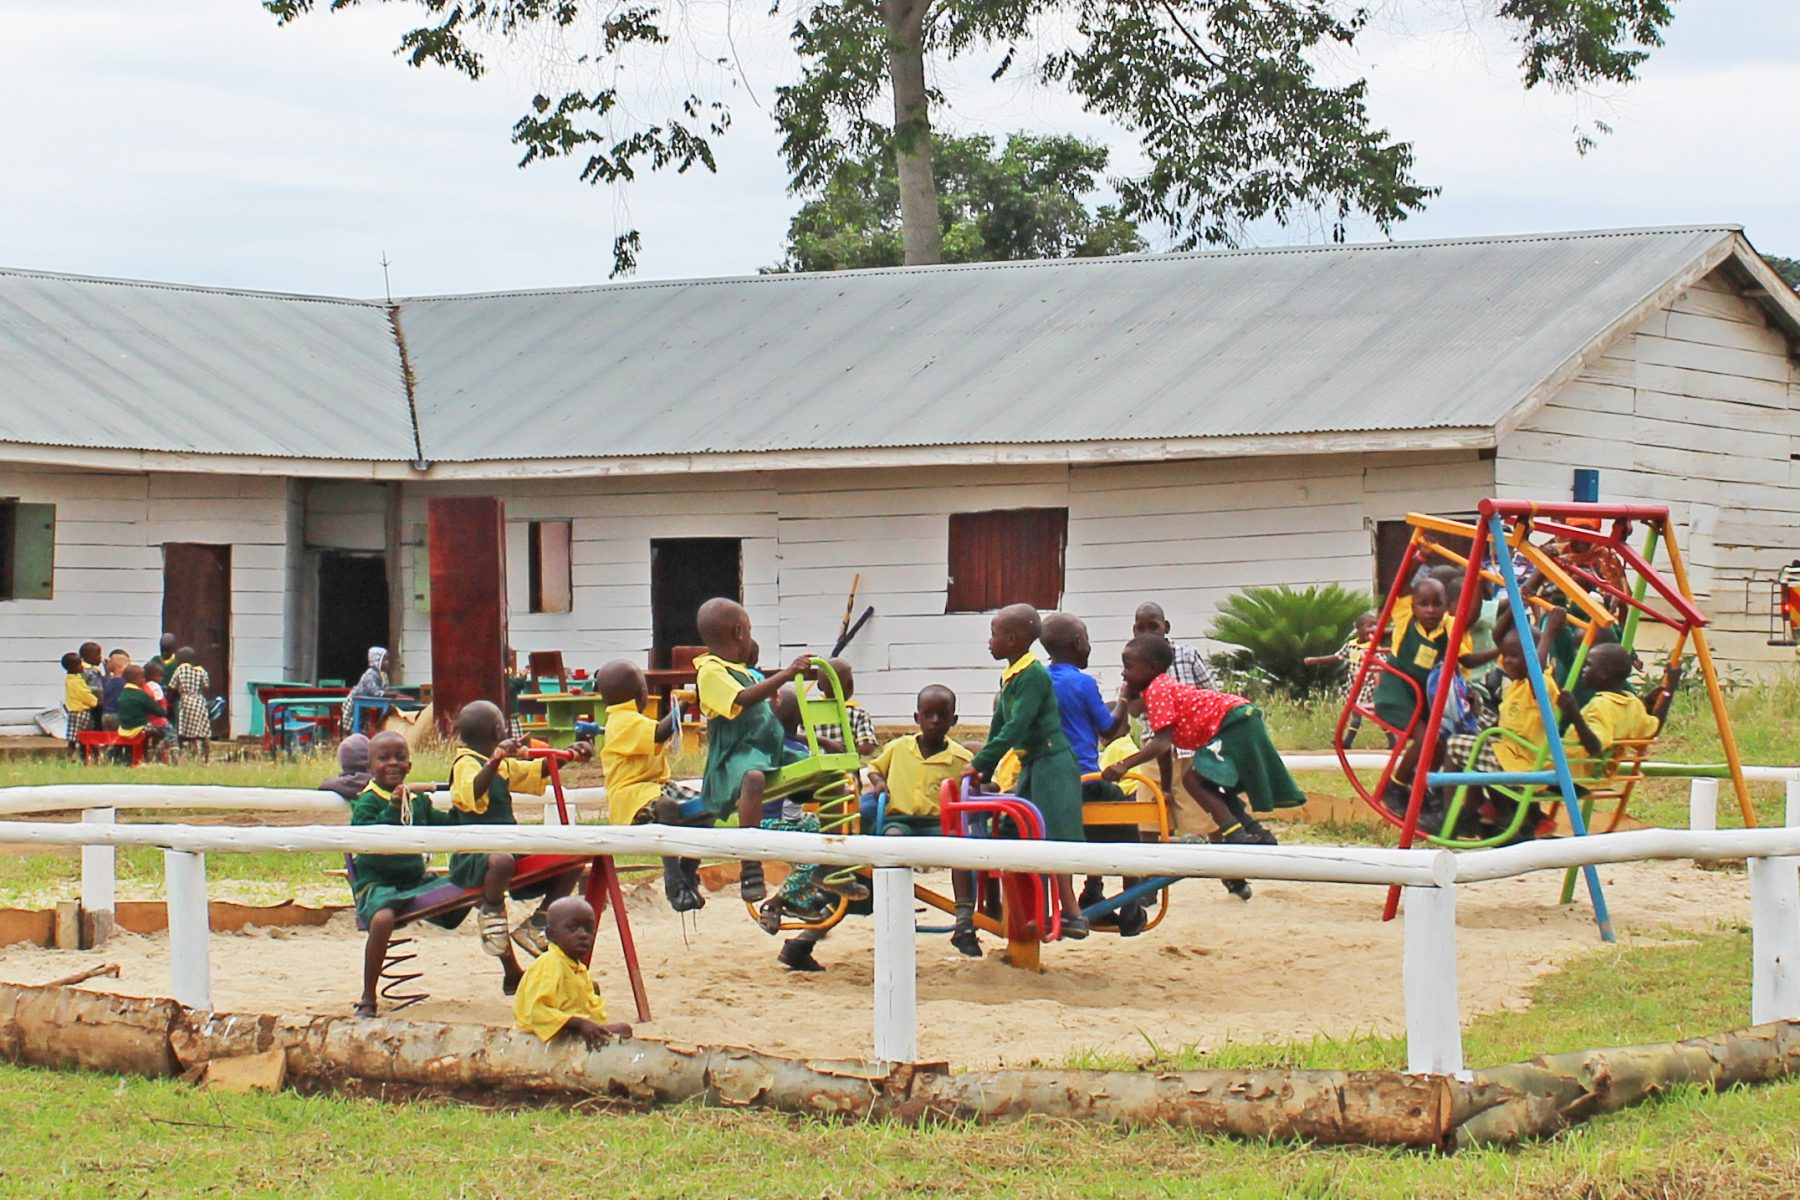 Nursery Class Children Playing on Newly Installed Playgound Equipment - a Seesaw, a Merry-Go-Round, and a Bench Swing